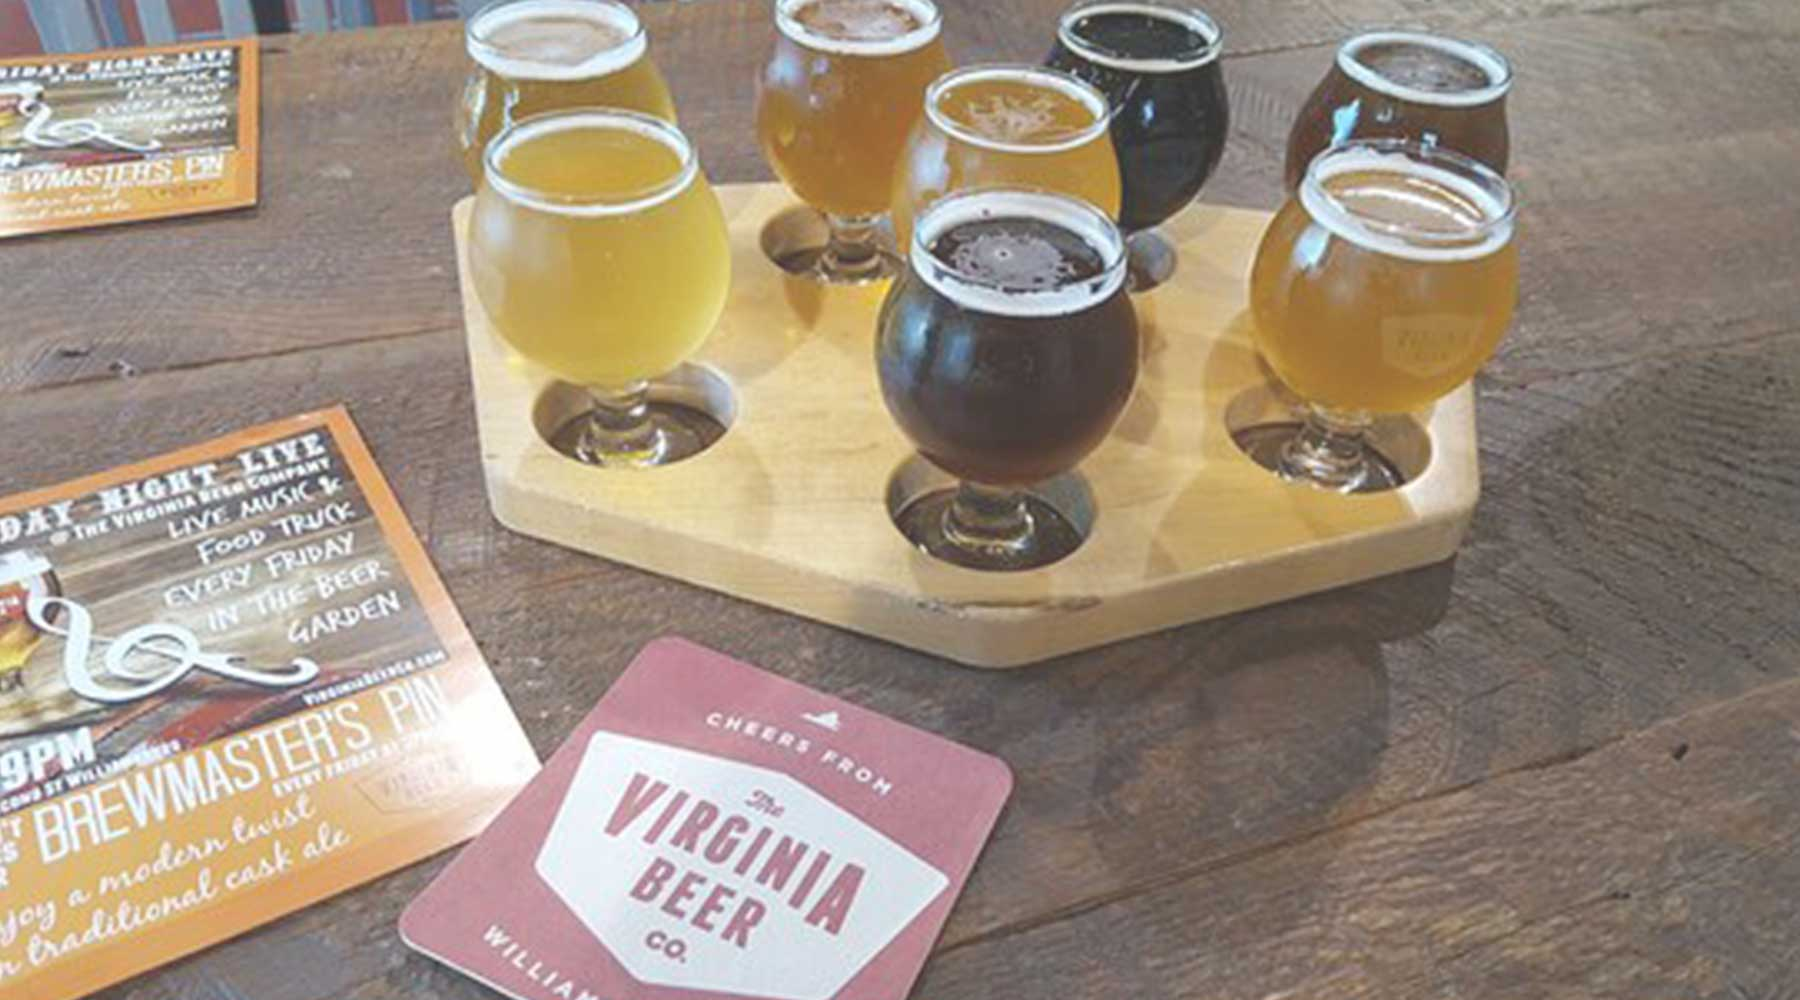 The Virginia Beer Company | Just Wine